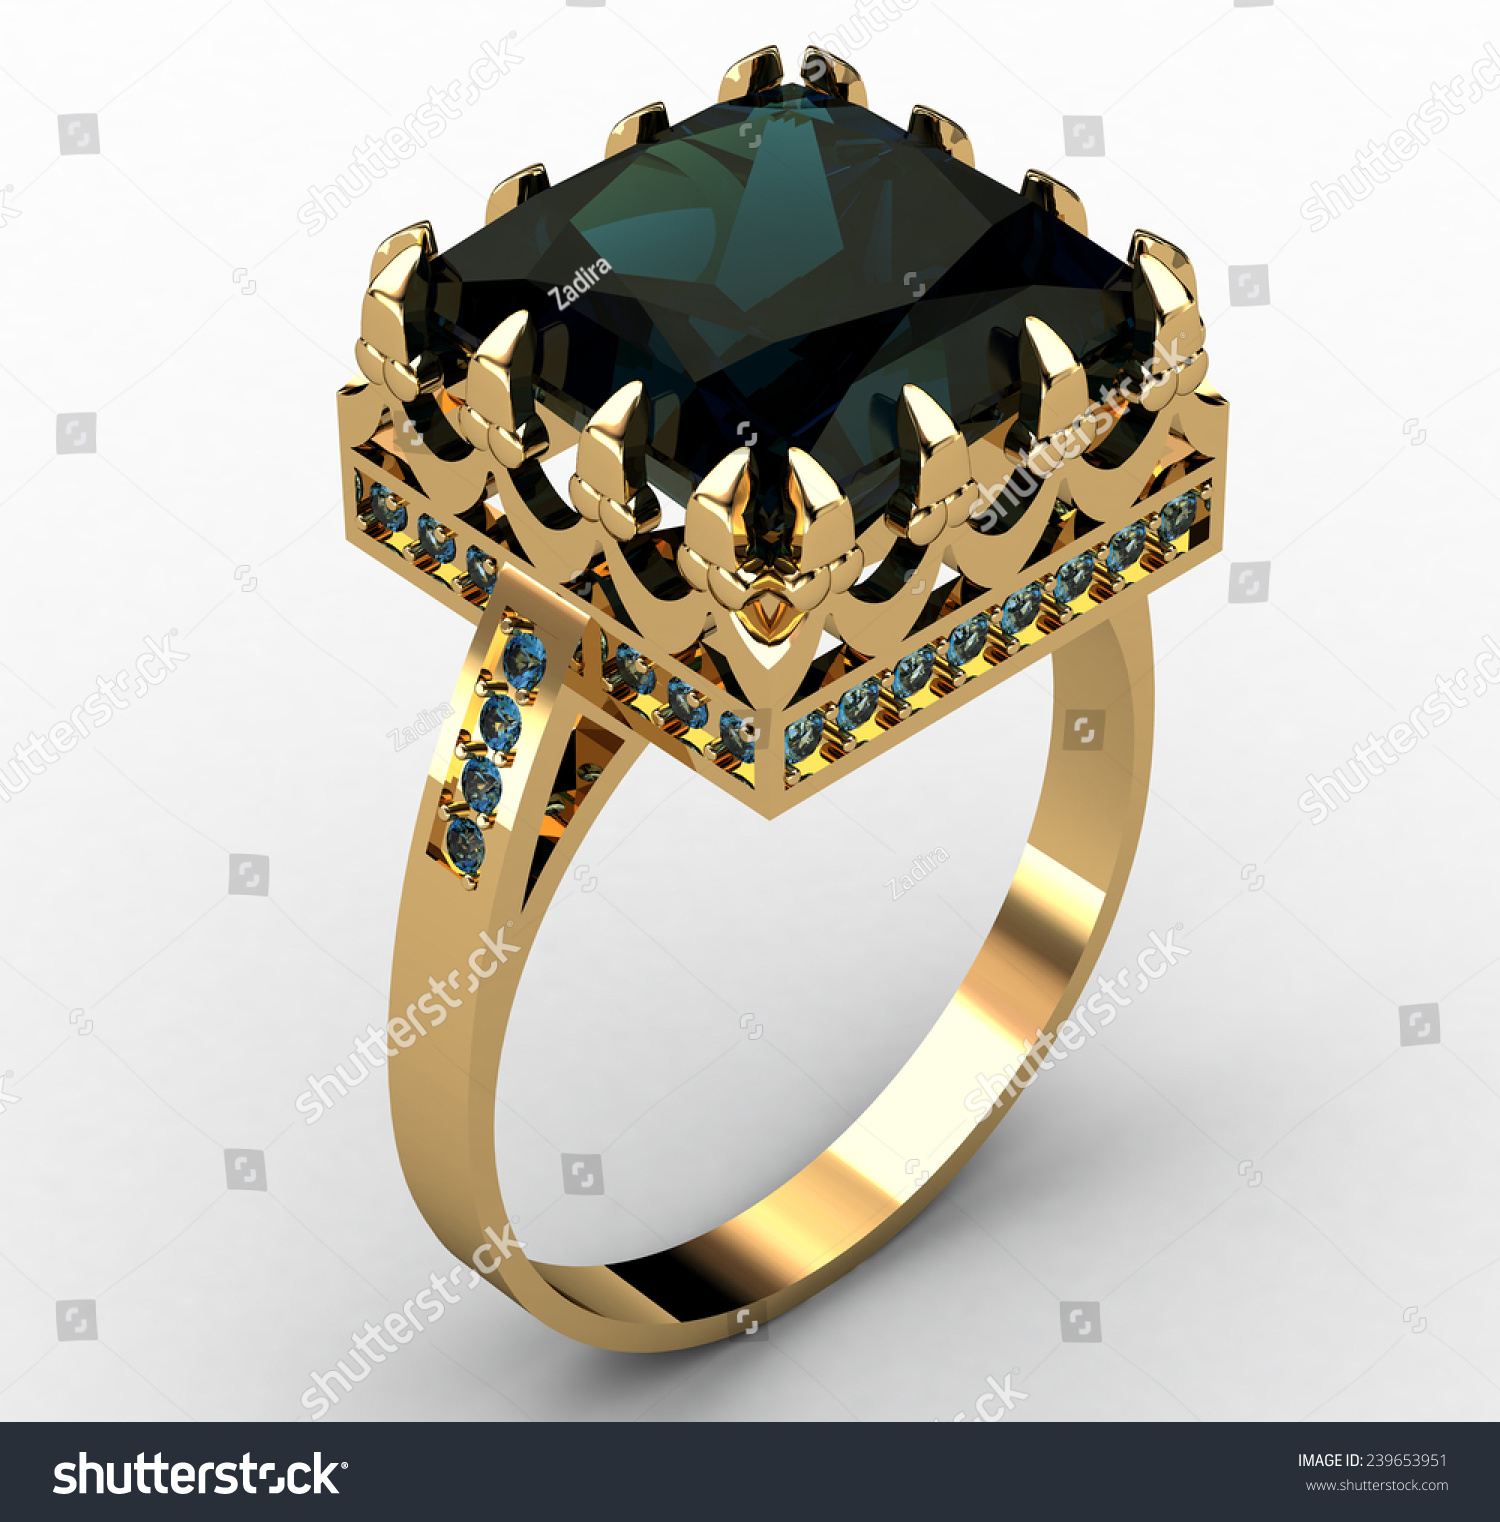 Beautiful Golden Ring Big Green Stone Stock Illustration 239653951 ...